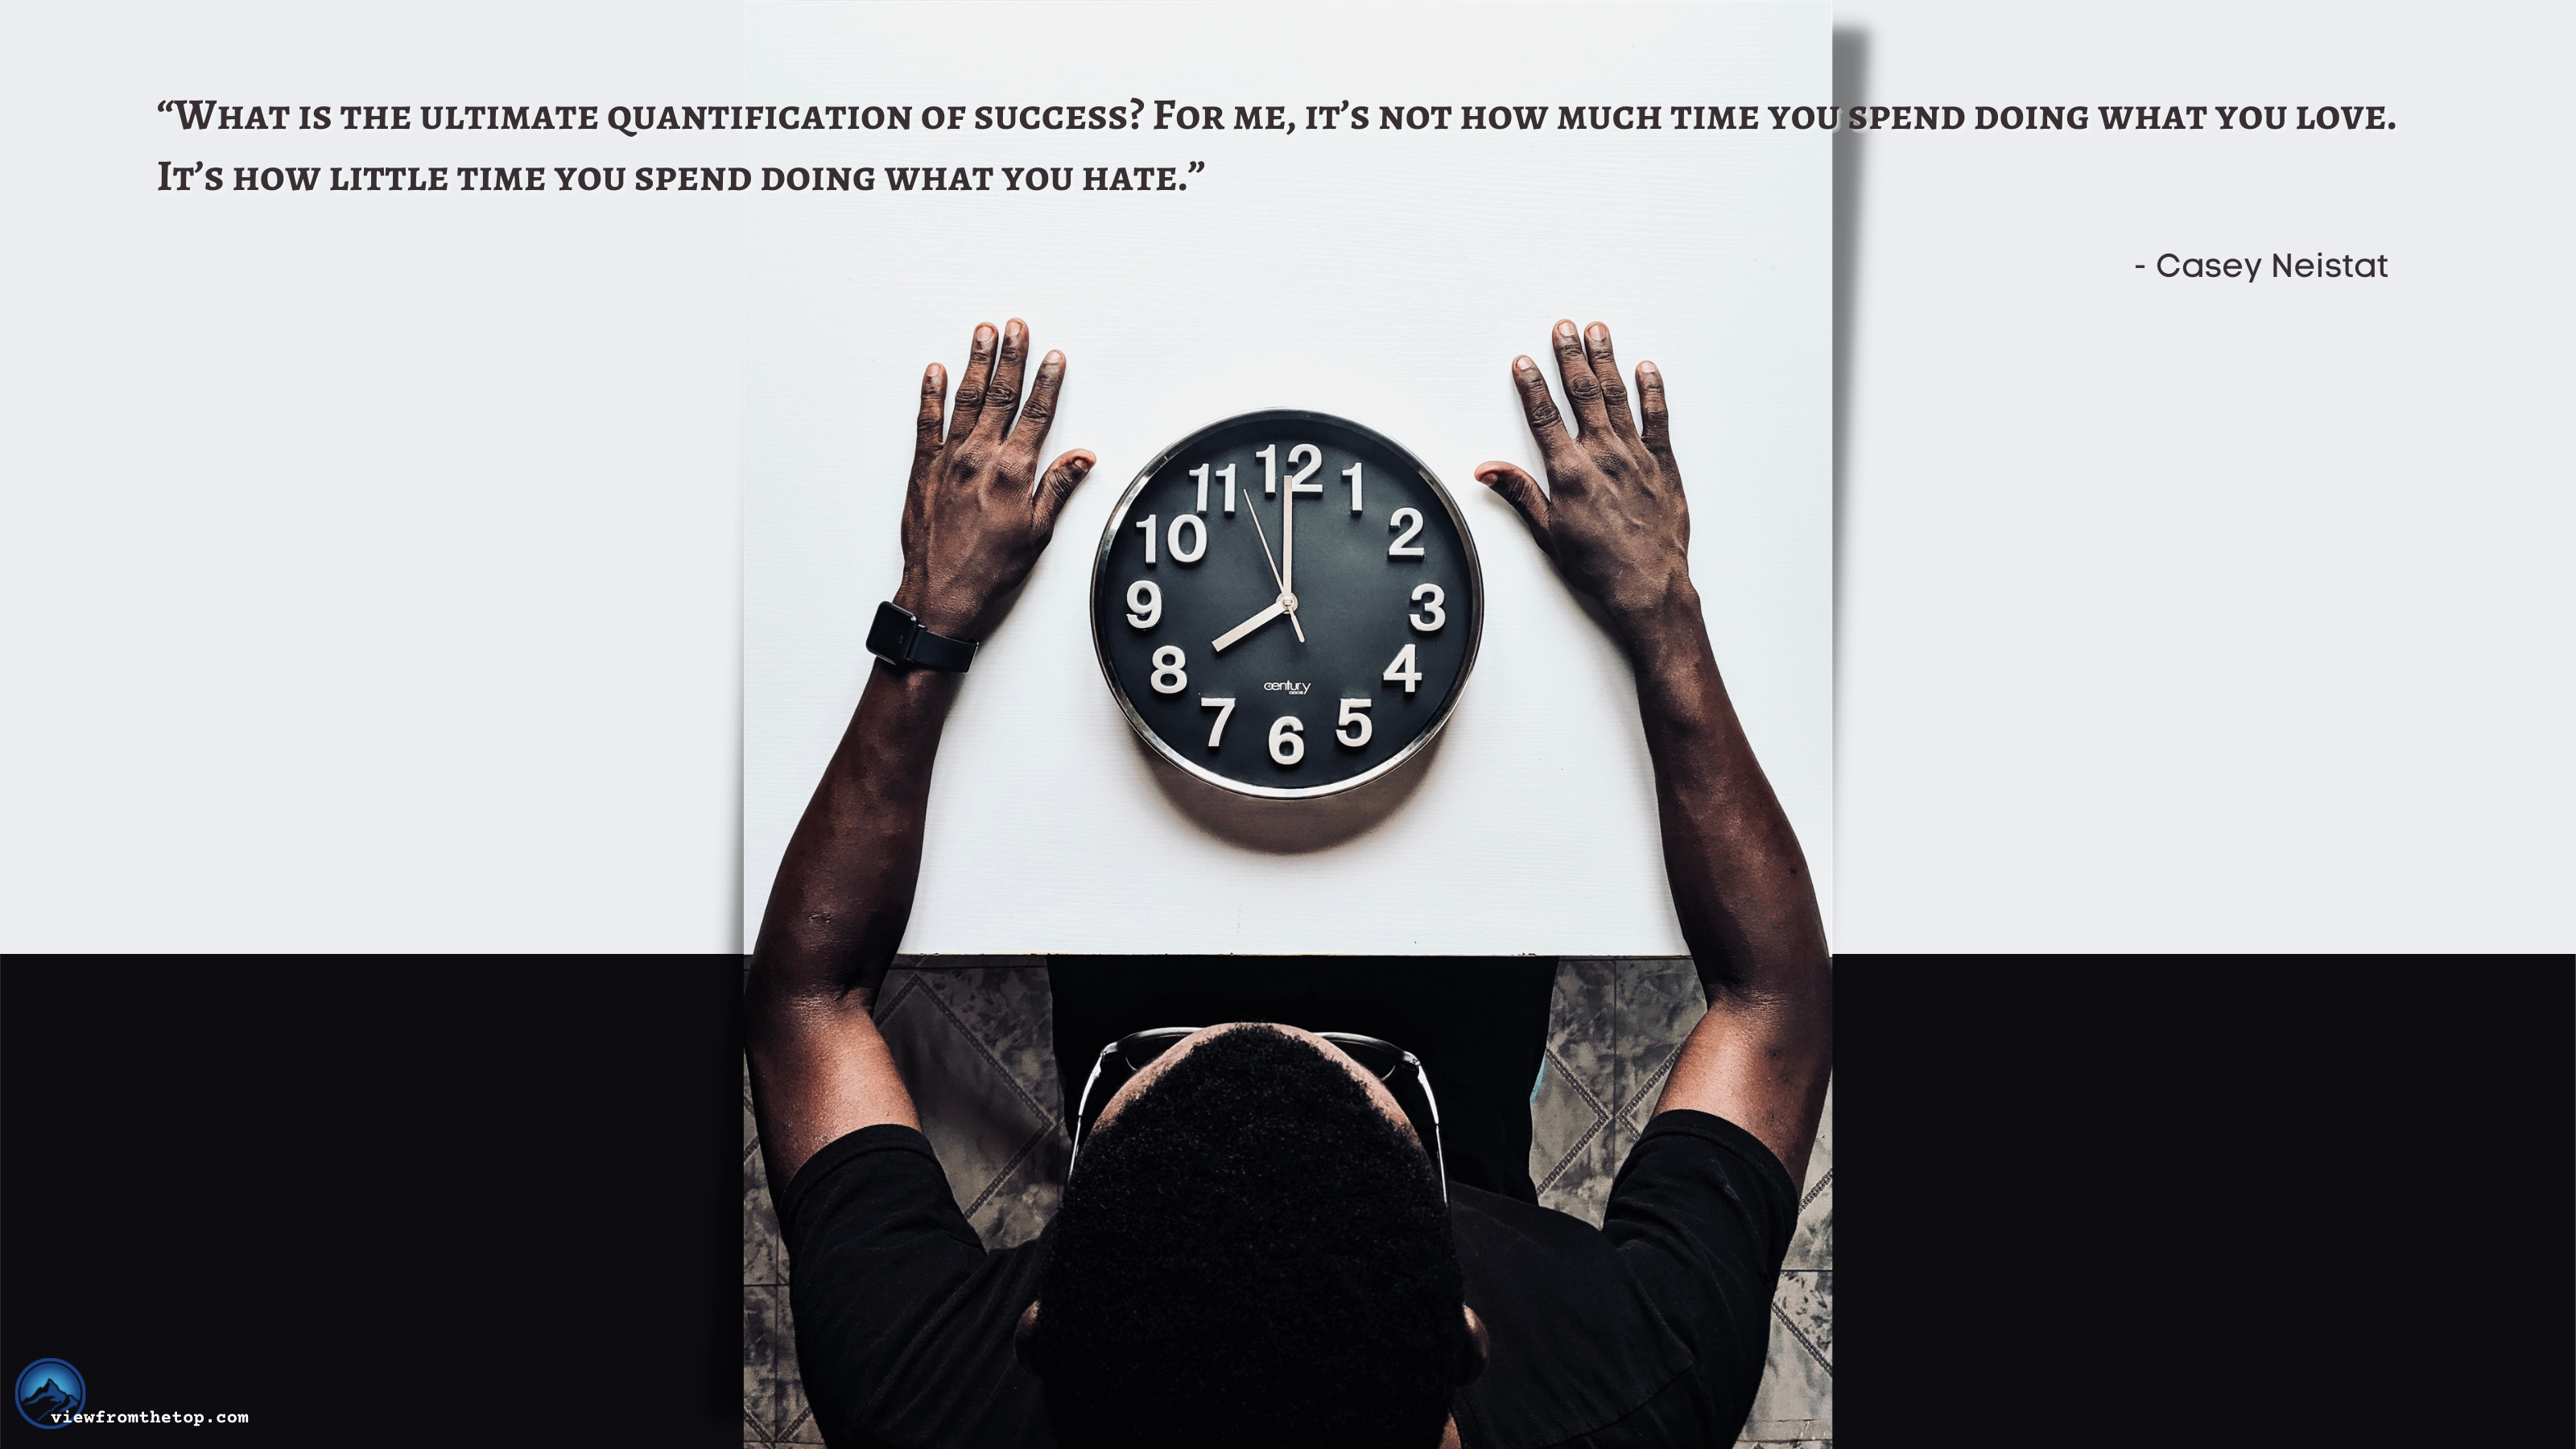 """""""What is the ultimate quantification of success For me, it's not how much time you spend doing what you love. It's how little time you spend doing what you hate."""" (1)"""